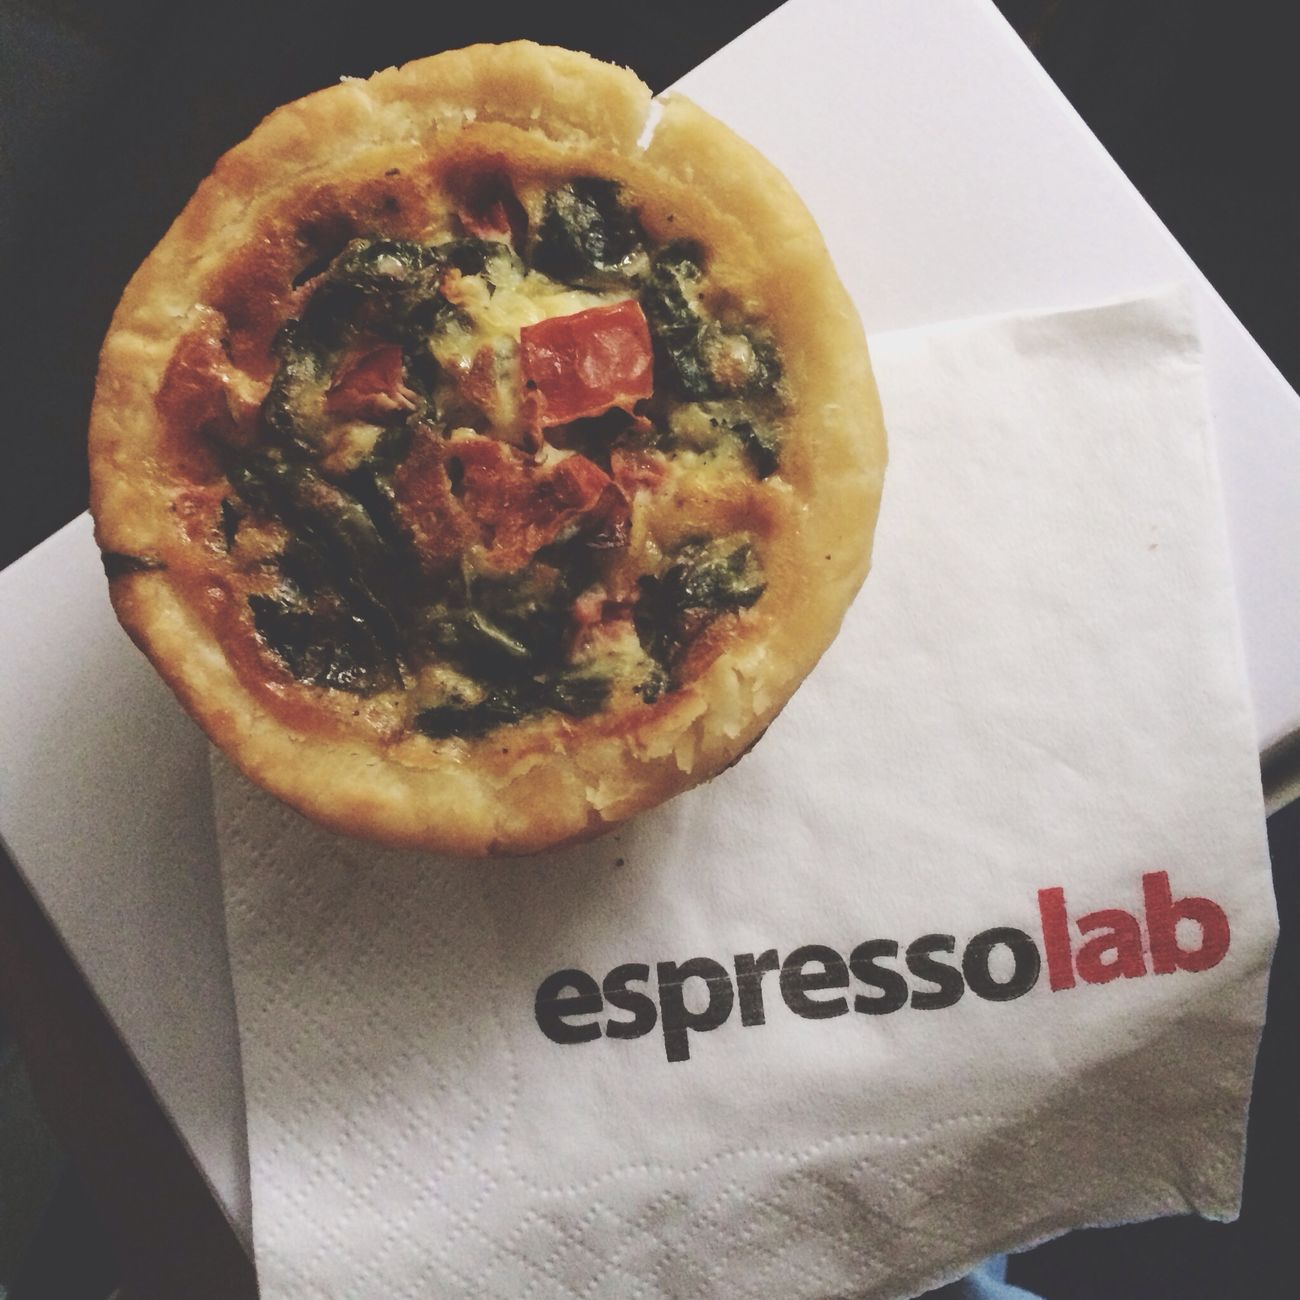 Spinach tomato quiche for breakfast. Good morning people?